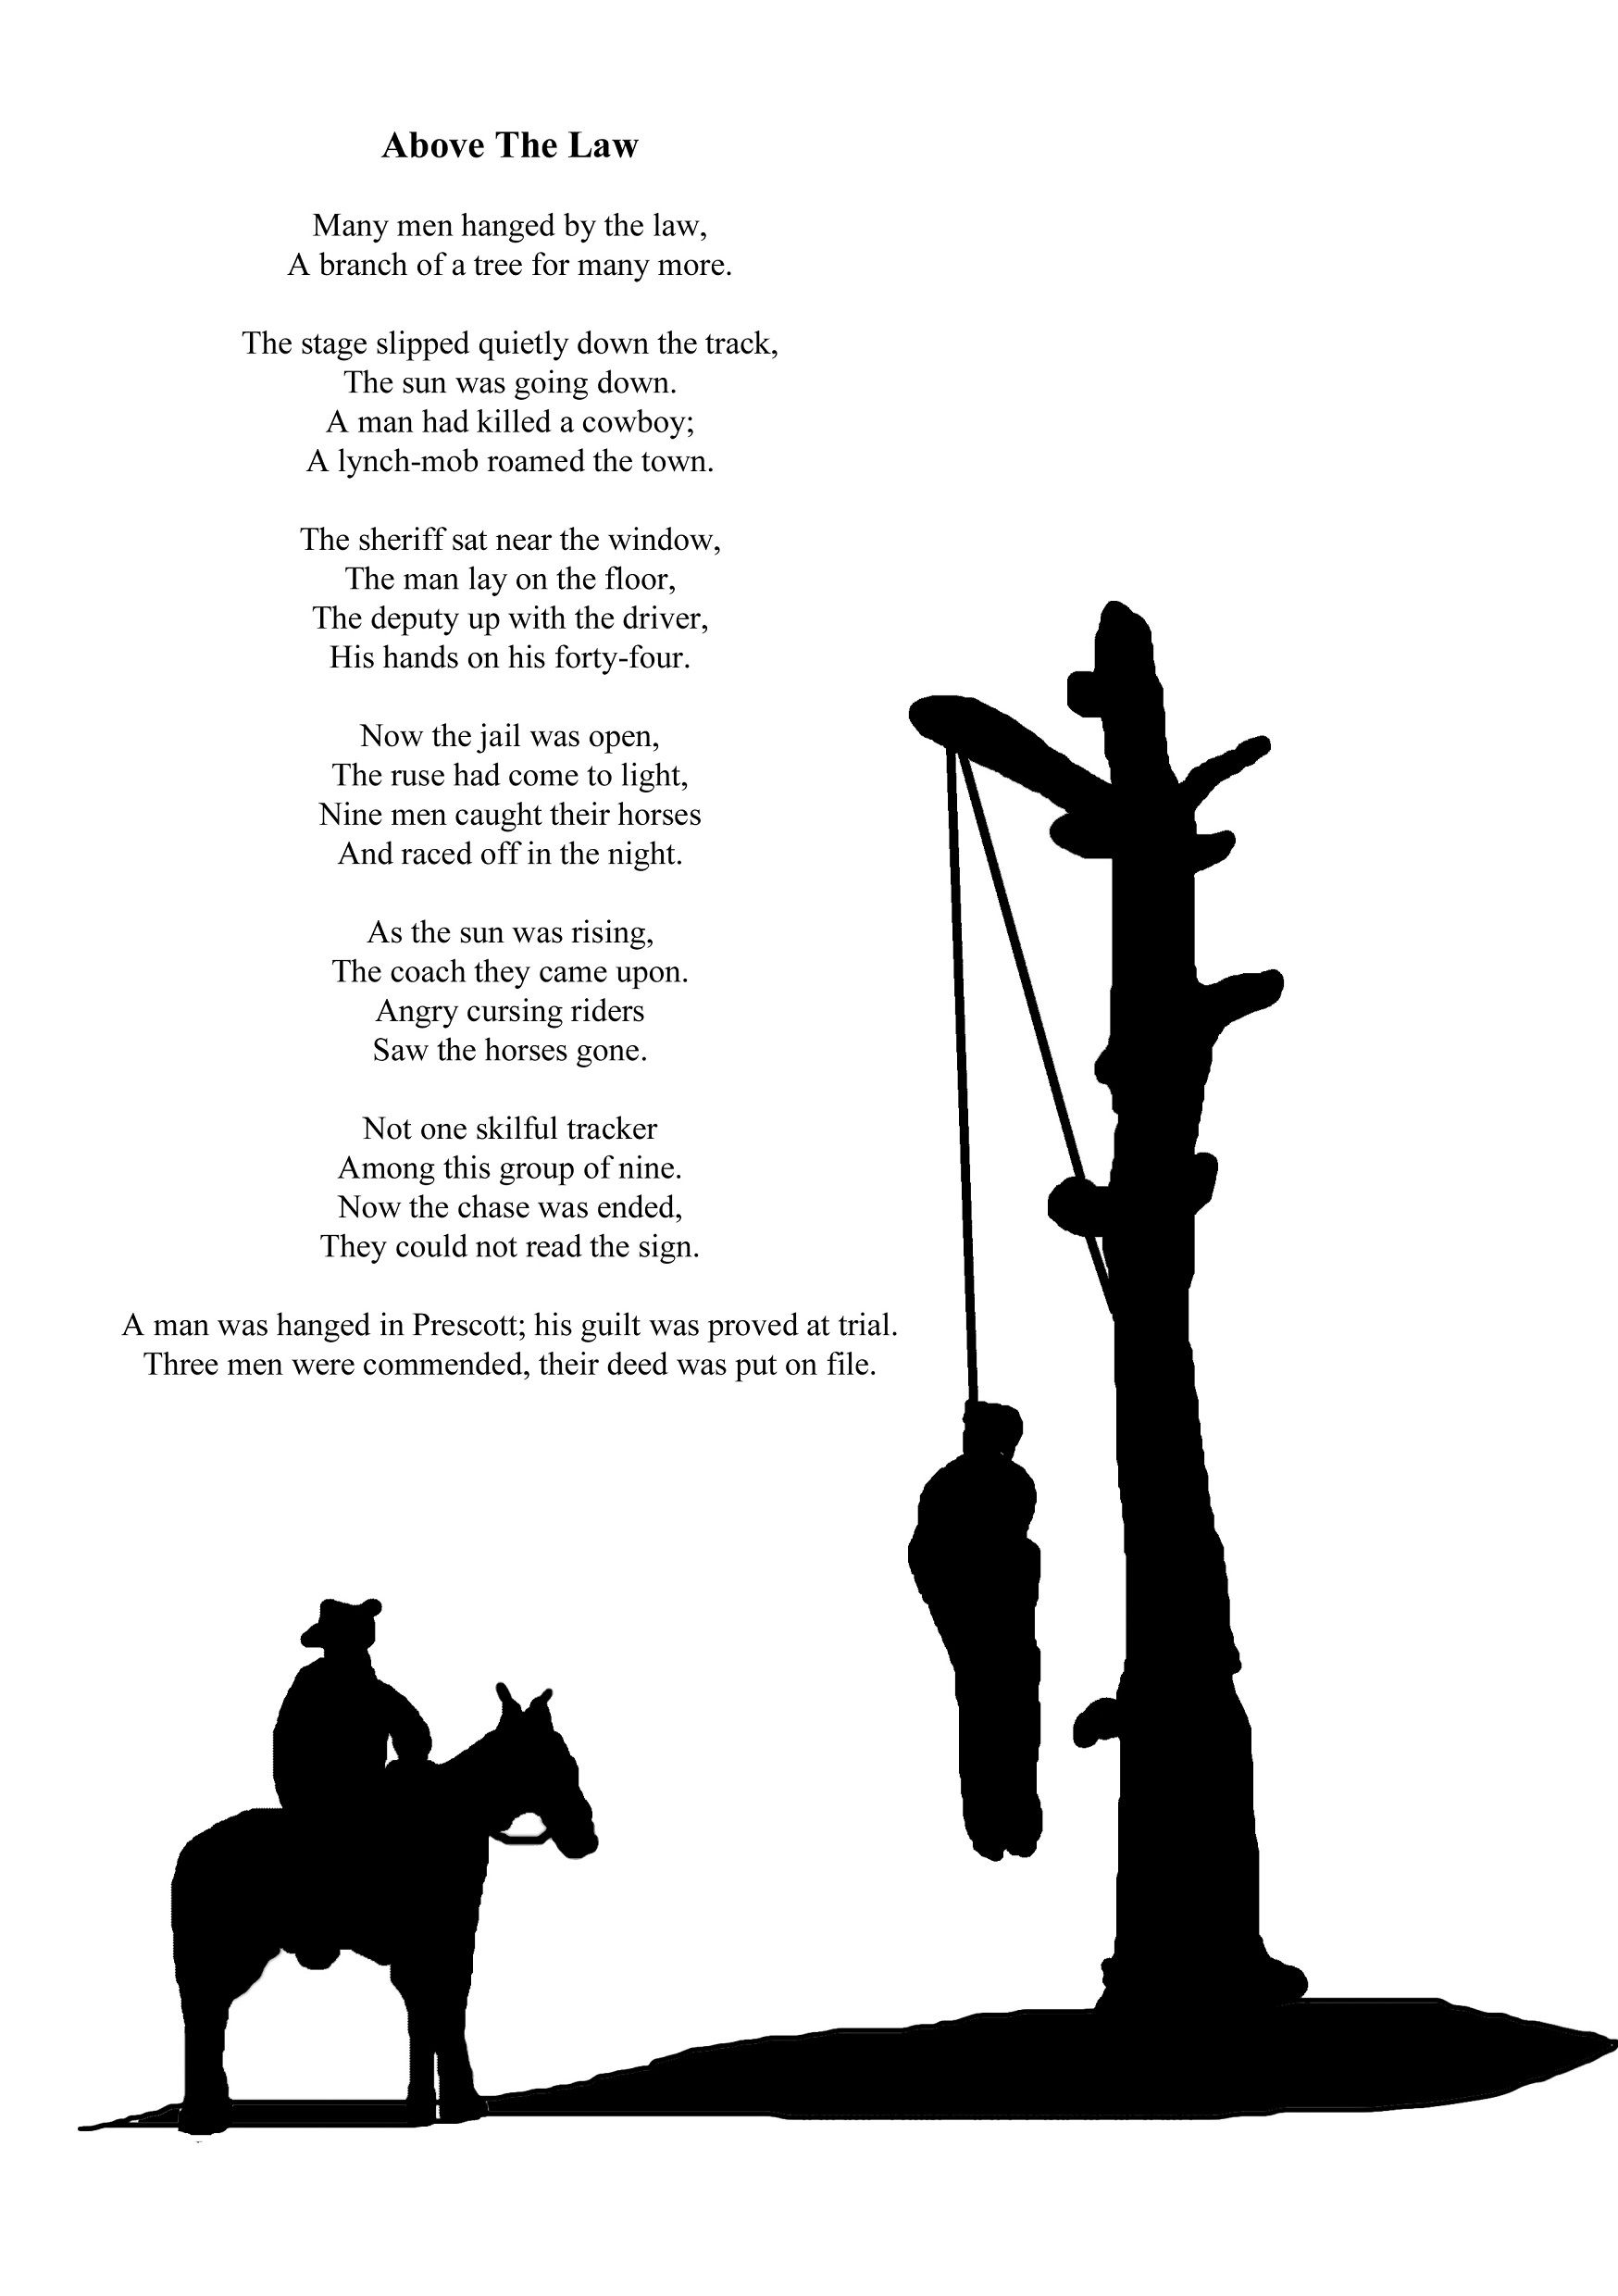 Pin by Erica Valdes on school   Cody sanderson, Old west, Poems